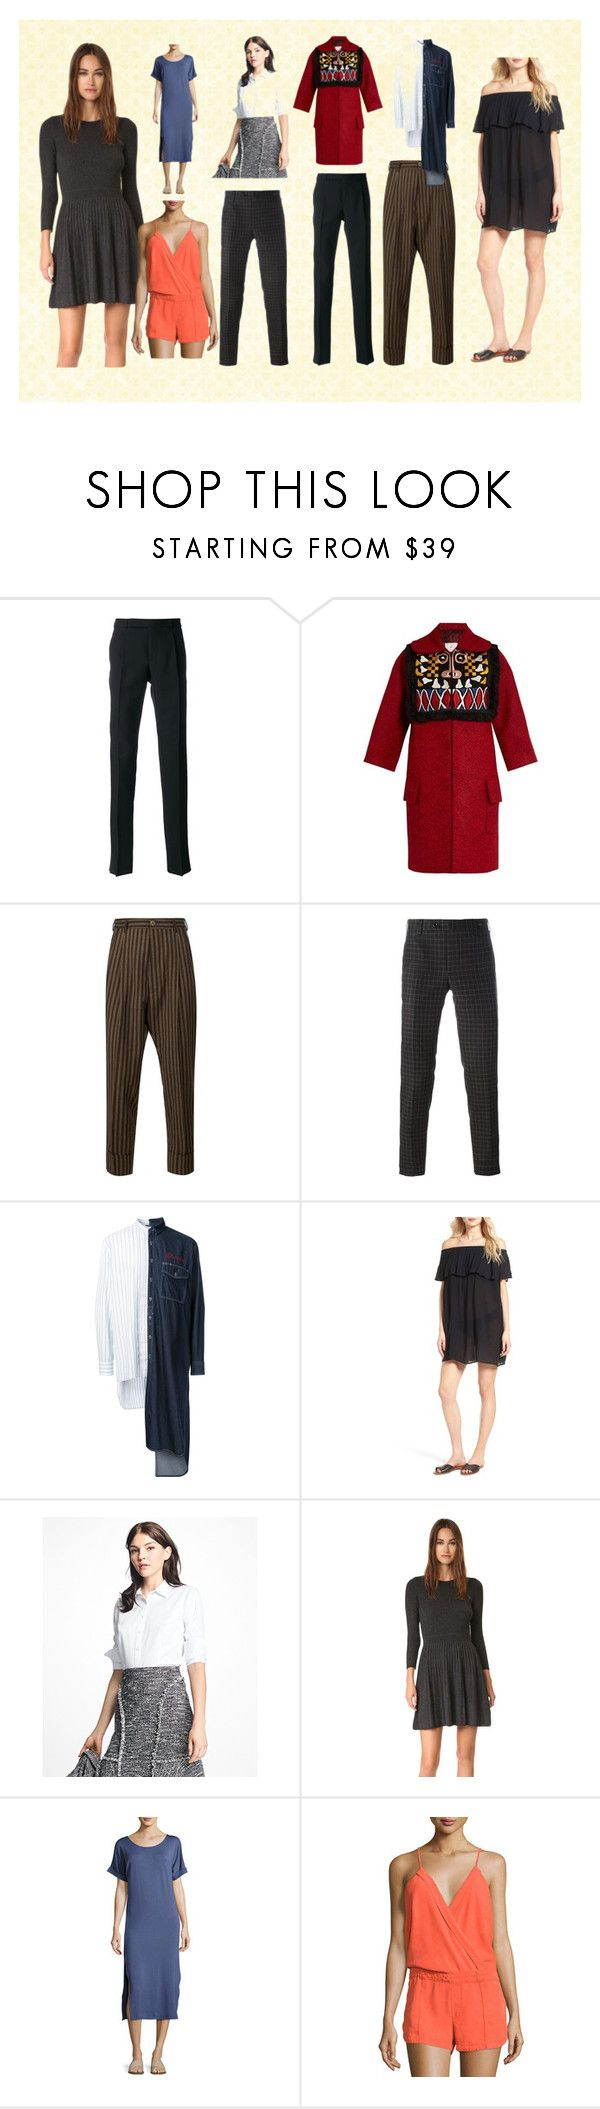 """""""Party Casuals"""" by justinallison ❤ liked on Polyvore featuring Yves Saint Laurent, Stella Jean, Vivienne Westwood Man, PT01 Pantaloni Torino, Maison Mihara Yasuhiro, Hinge, Brooks Brothers, Joie, Montagne and On the Road"""